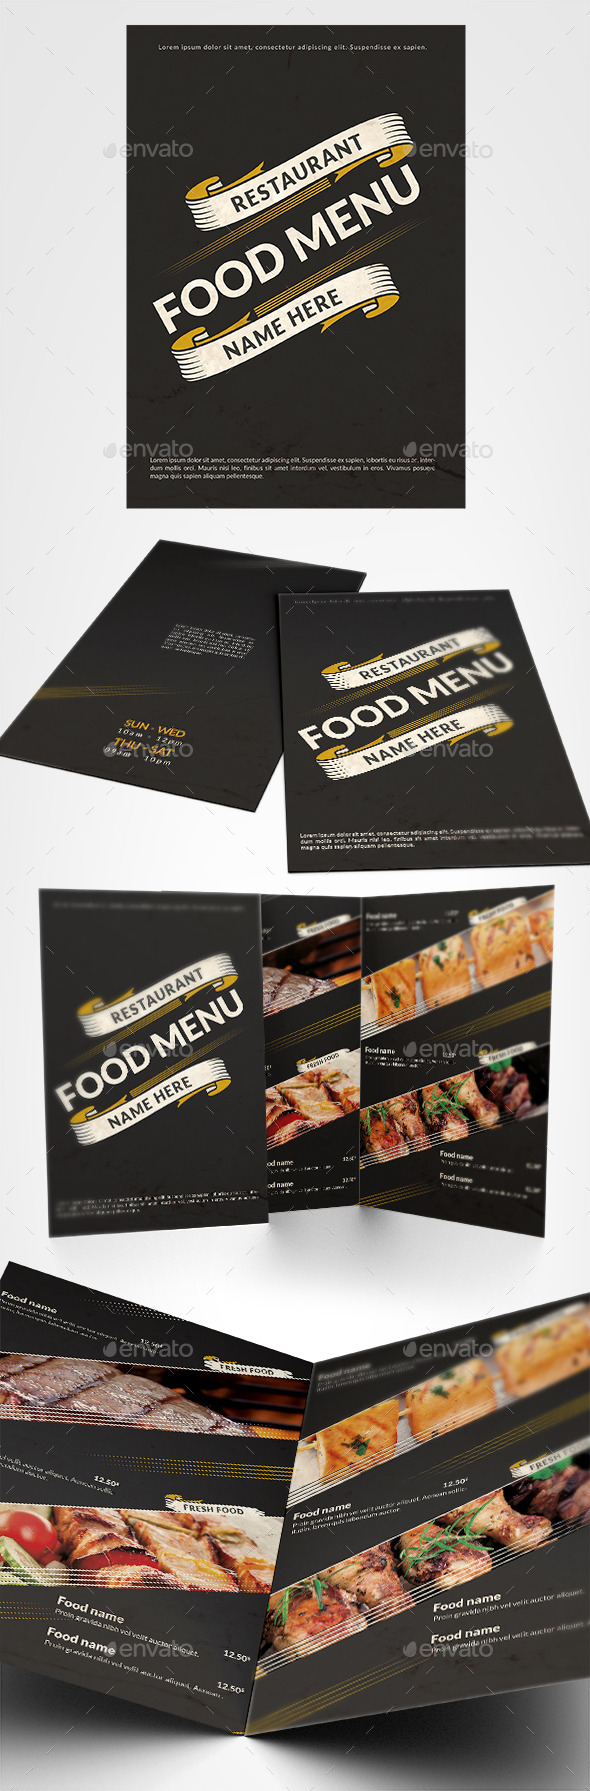 Restaurant Food Menu - Food Menus Print Templates